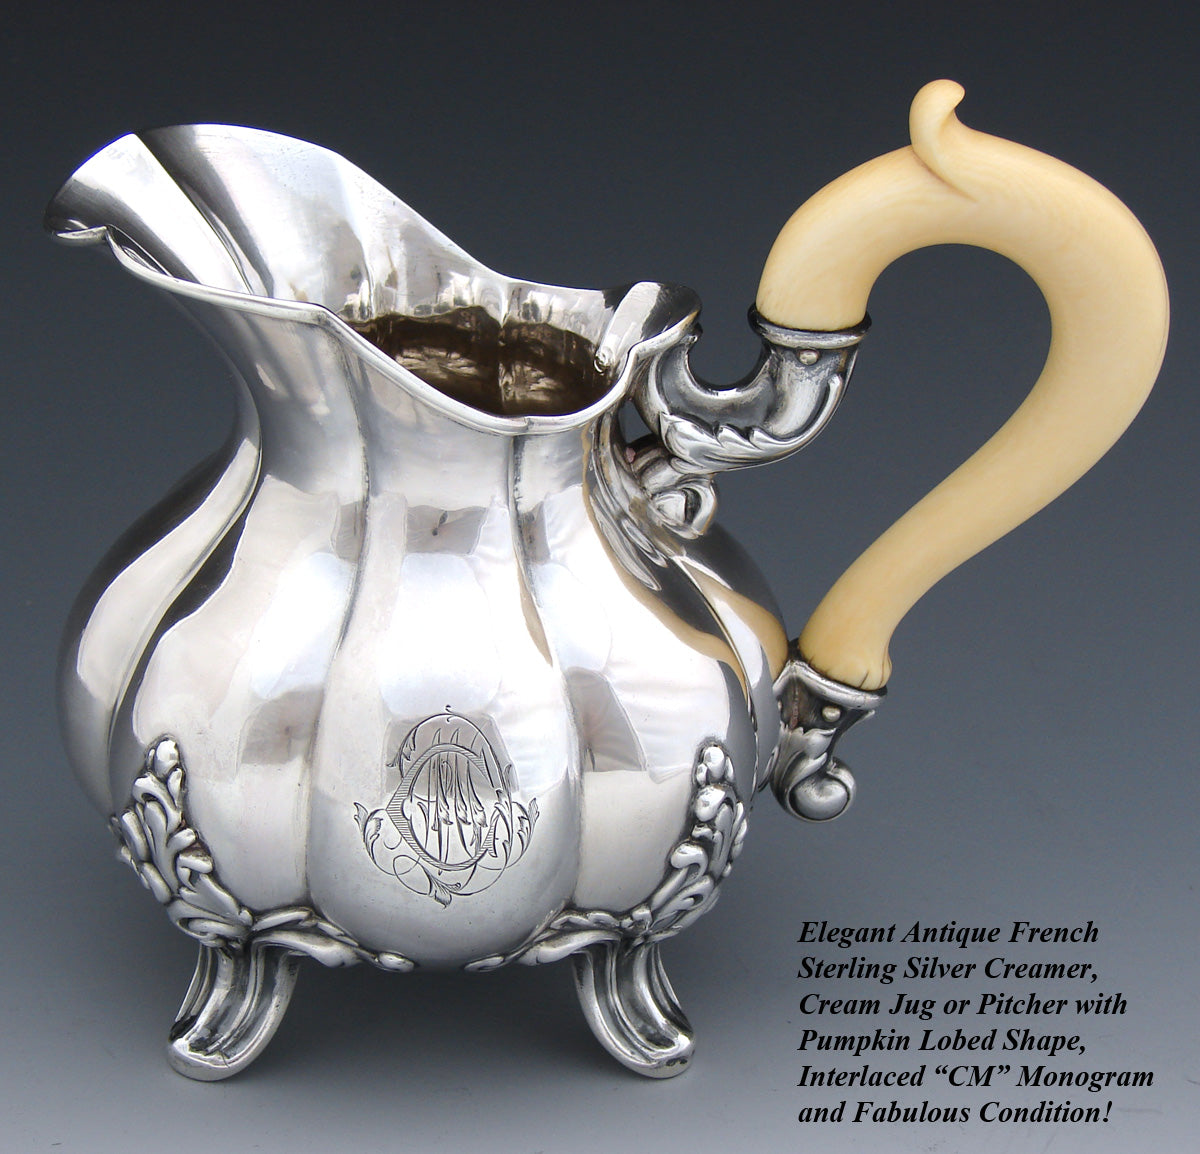 Antique French Sterling Silver Aesthetic Style Creamer or Cream Jug, Pitcher, Lobed Shape